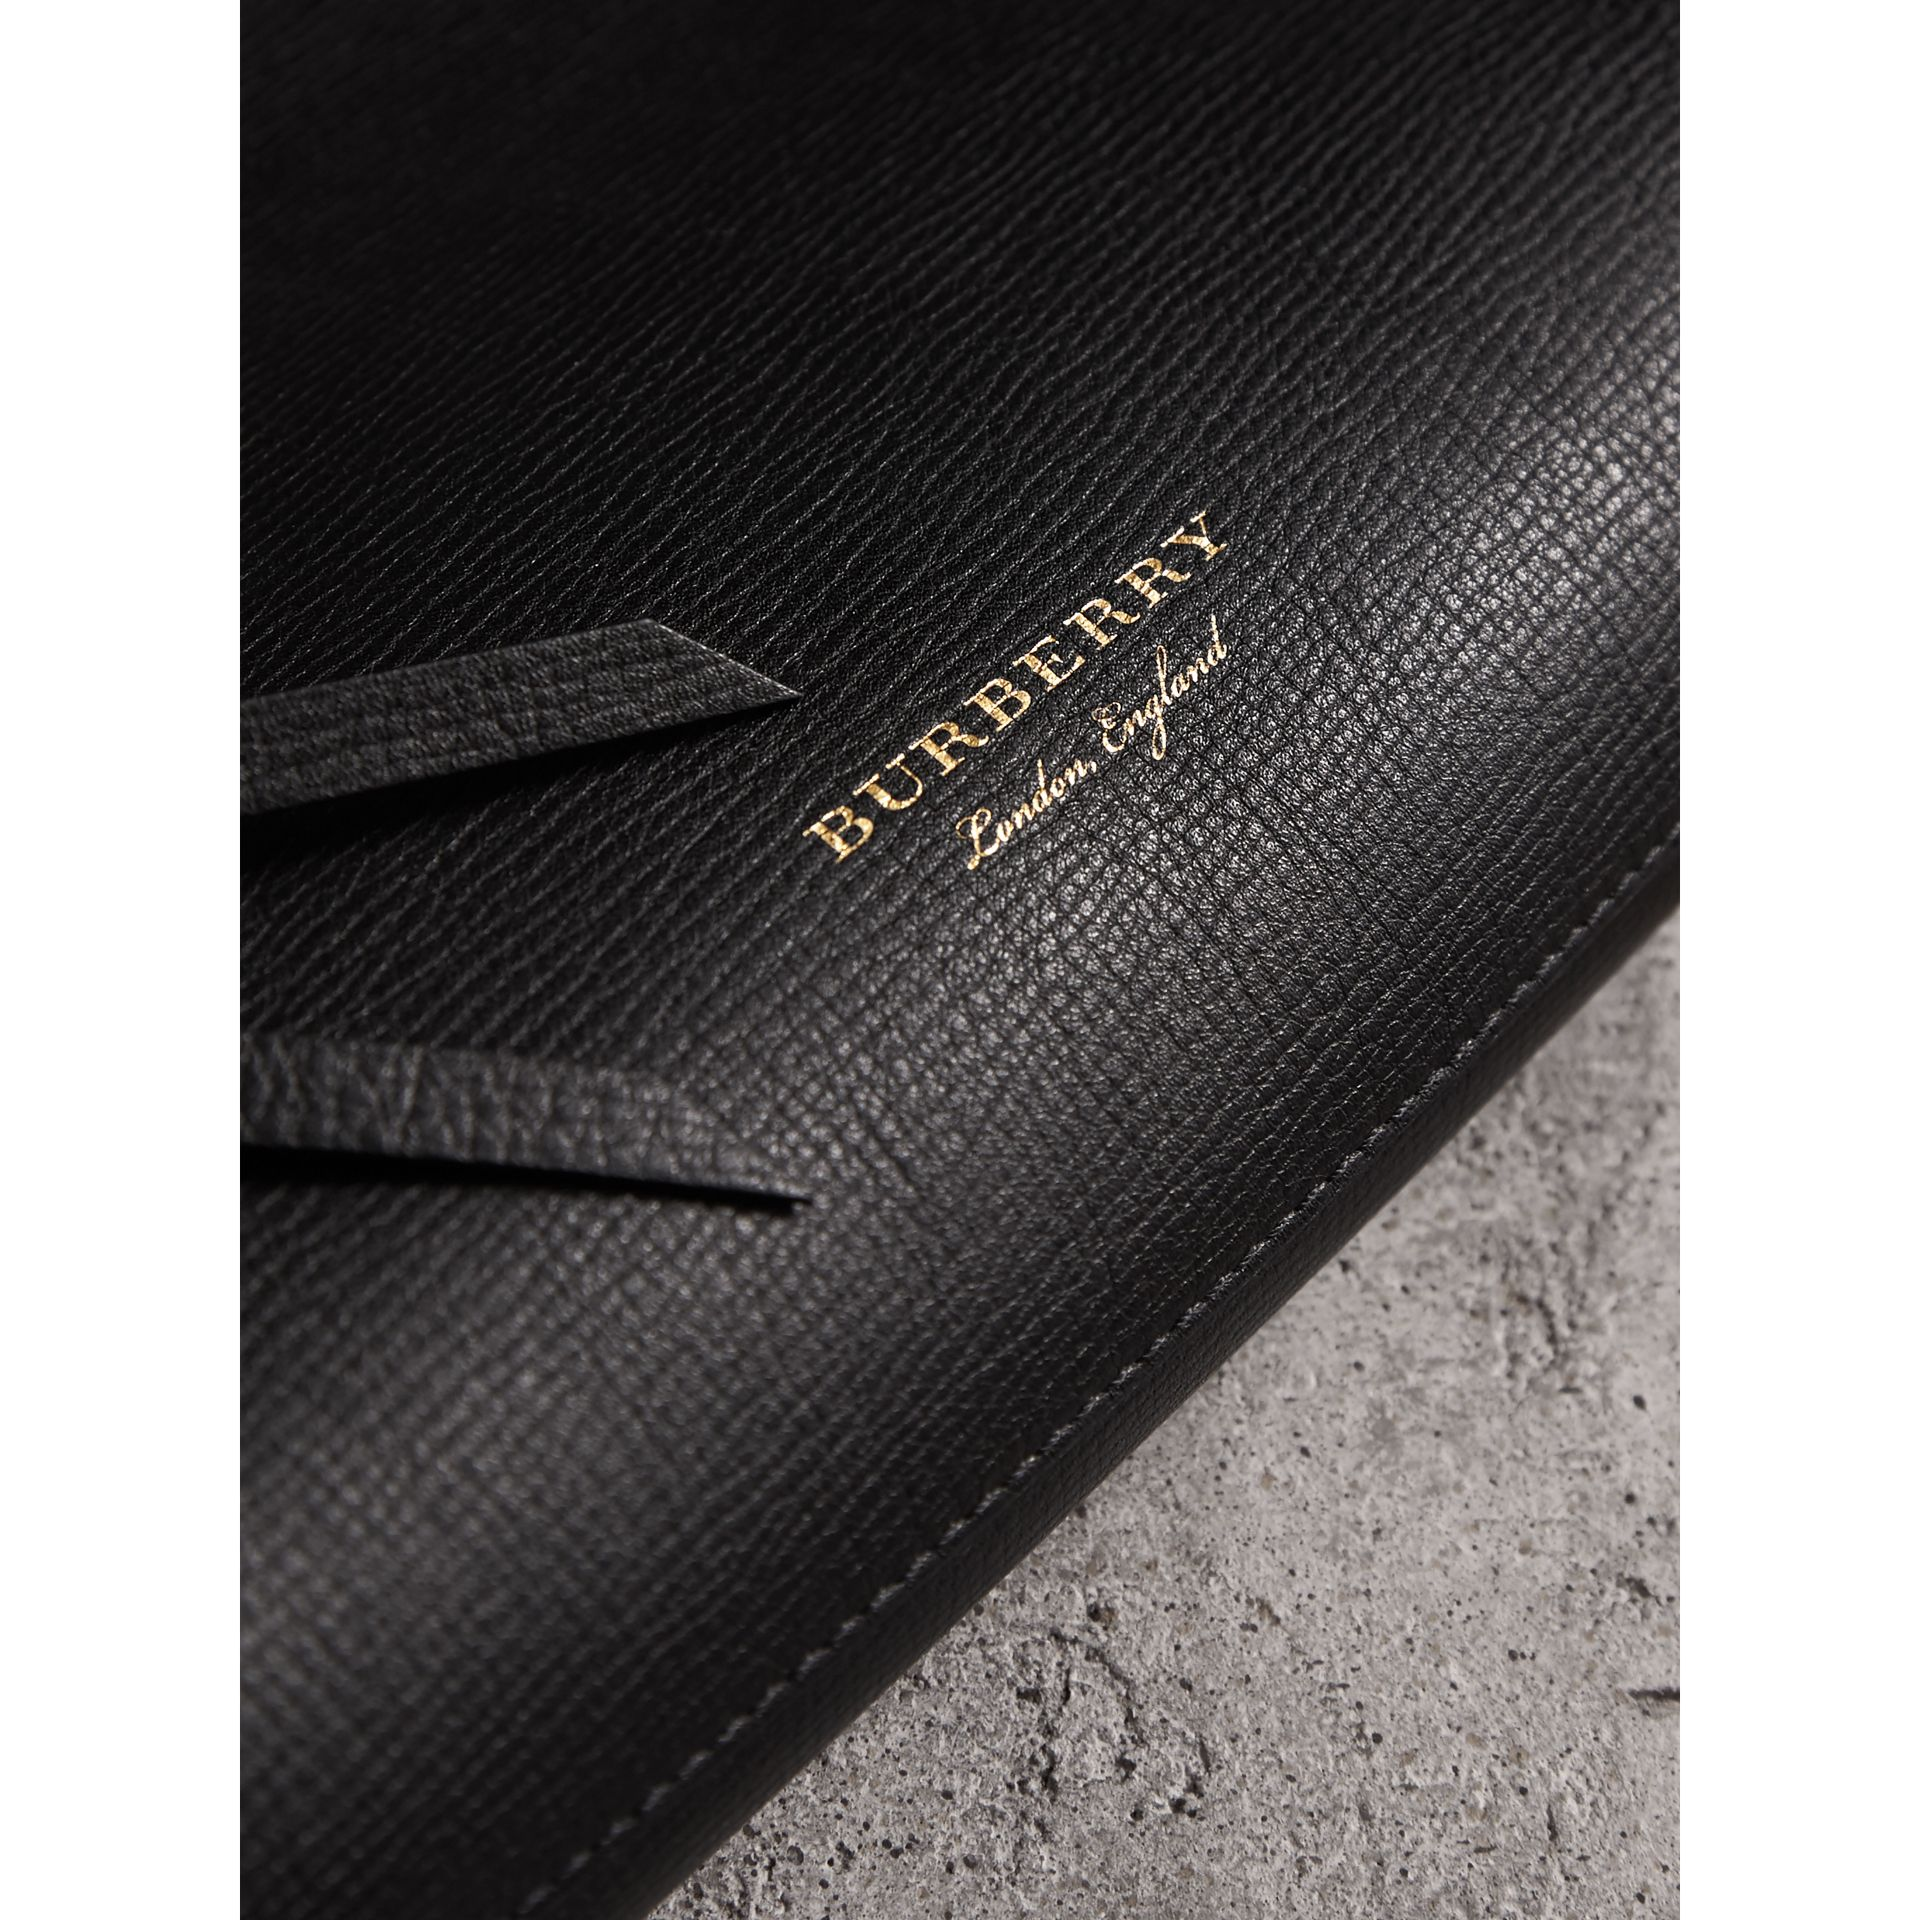 Grainy Leather Clutch Bag in Black - Women | Burberry - gallery image 1